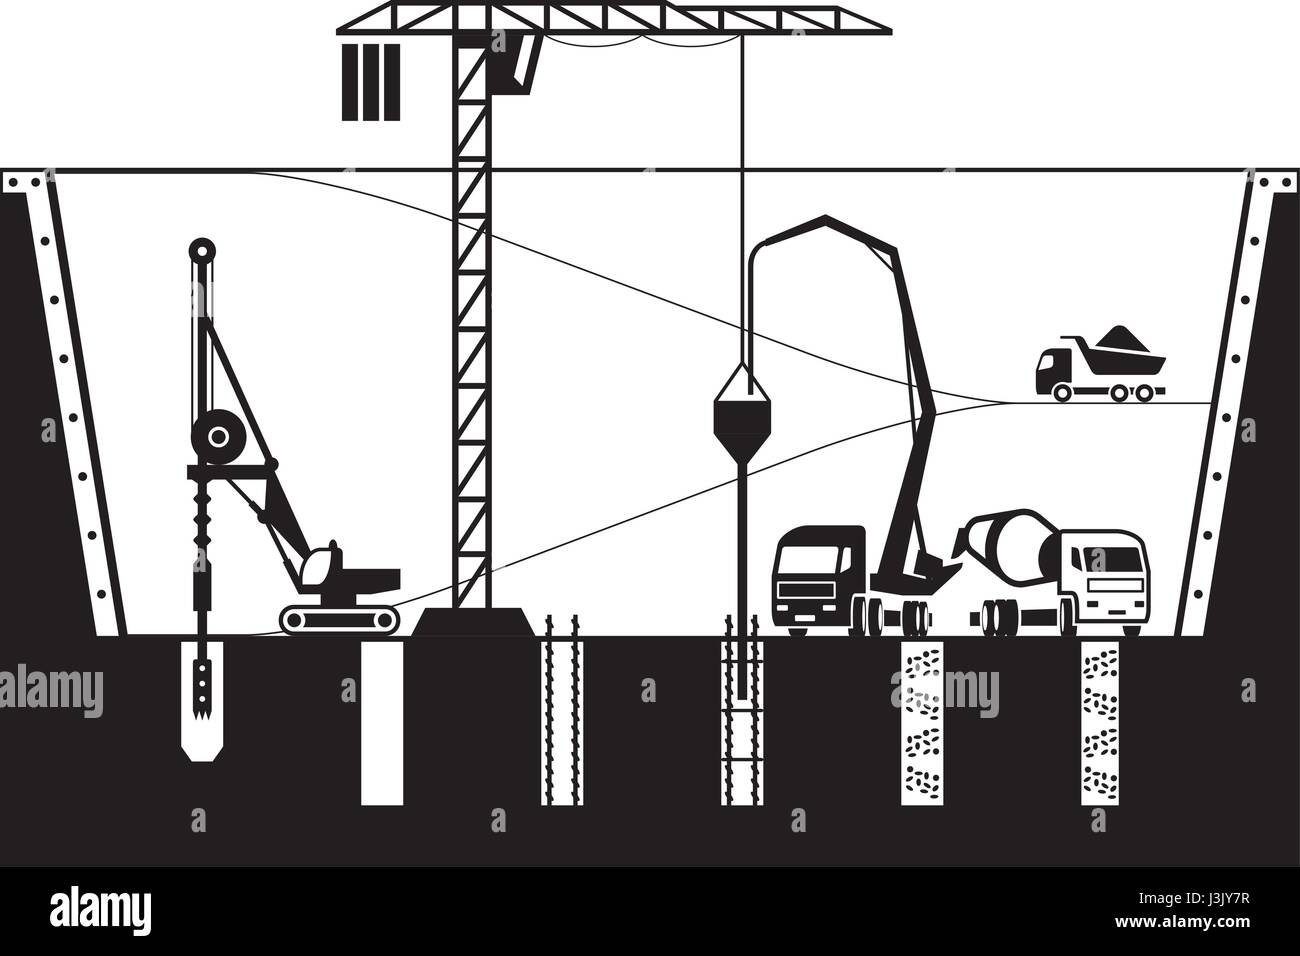 Construction of foundations of a building - vector illustration - Stock Vector